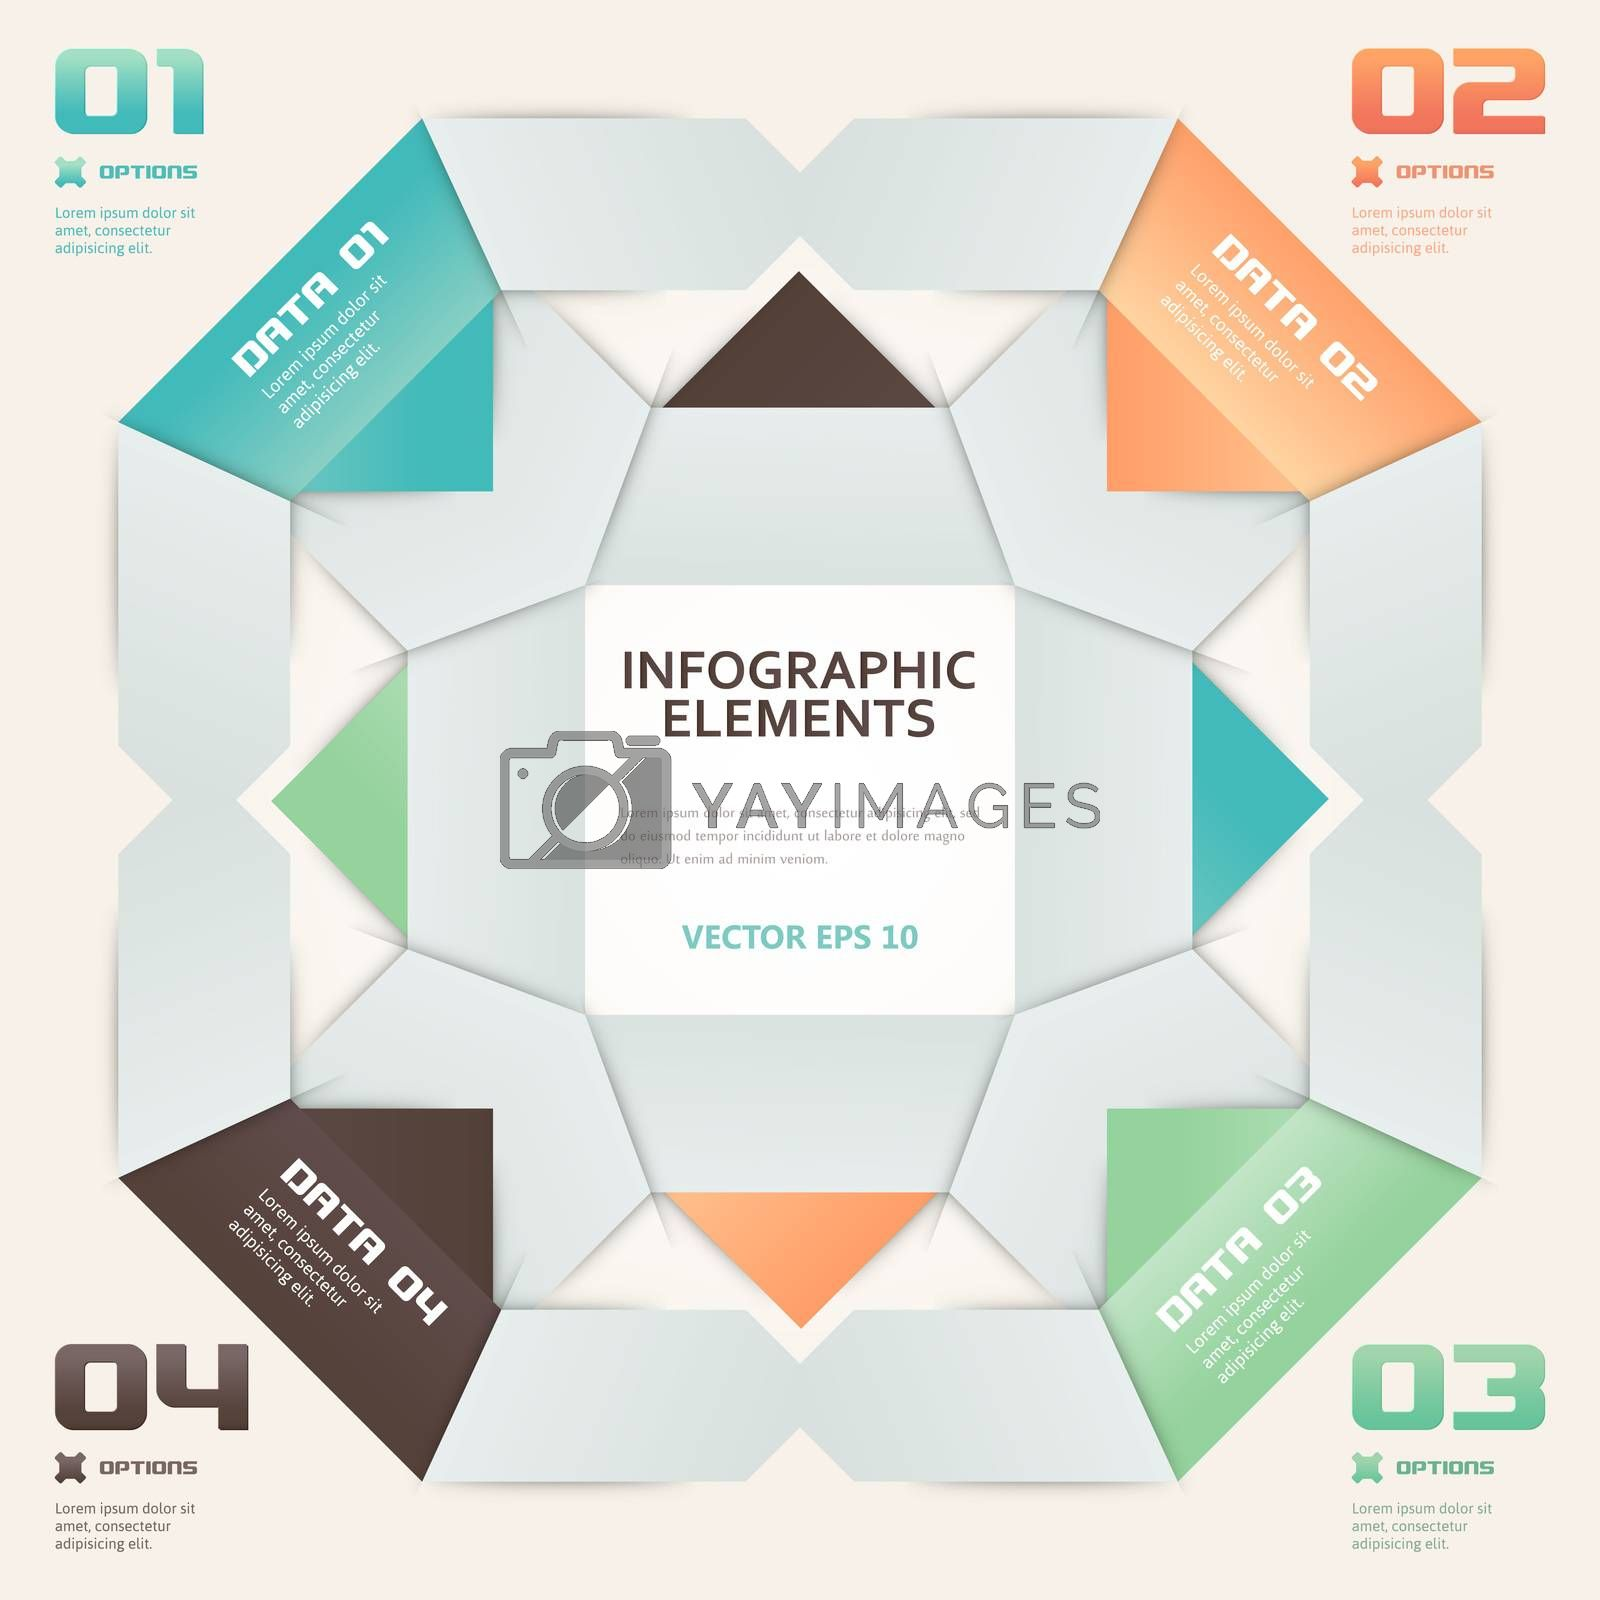 Modern Origami Style Number Options Infographic Illustration by WaD